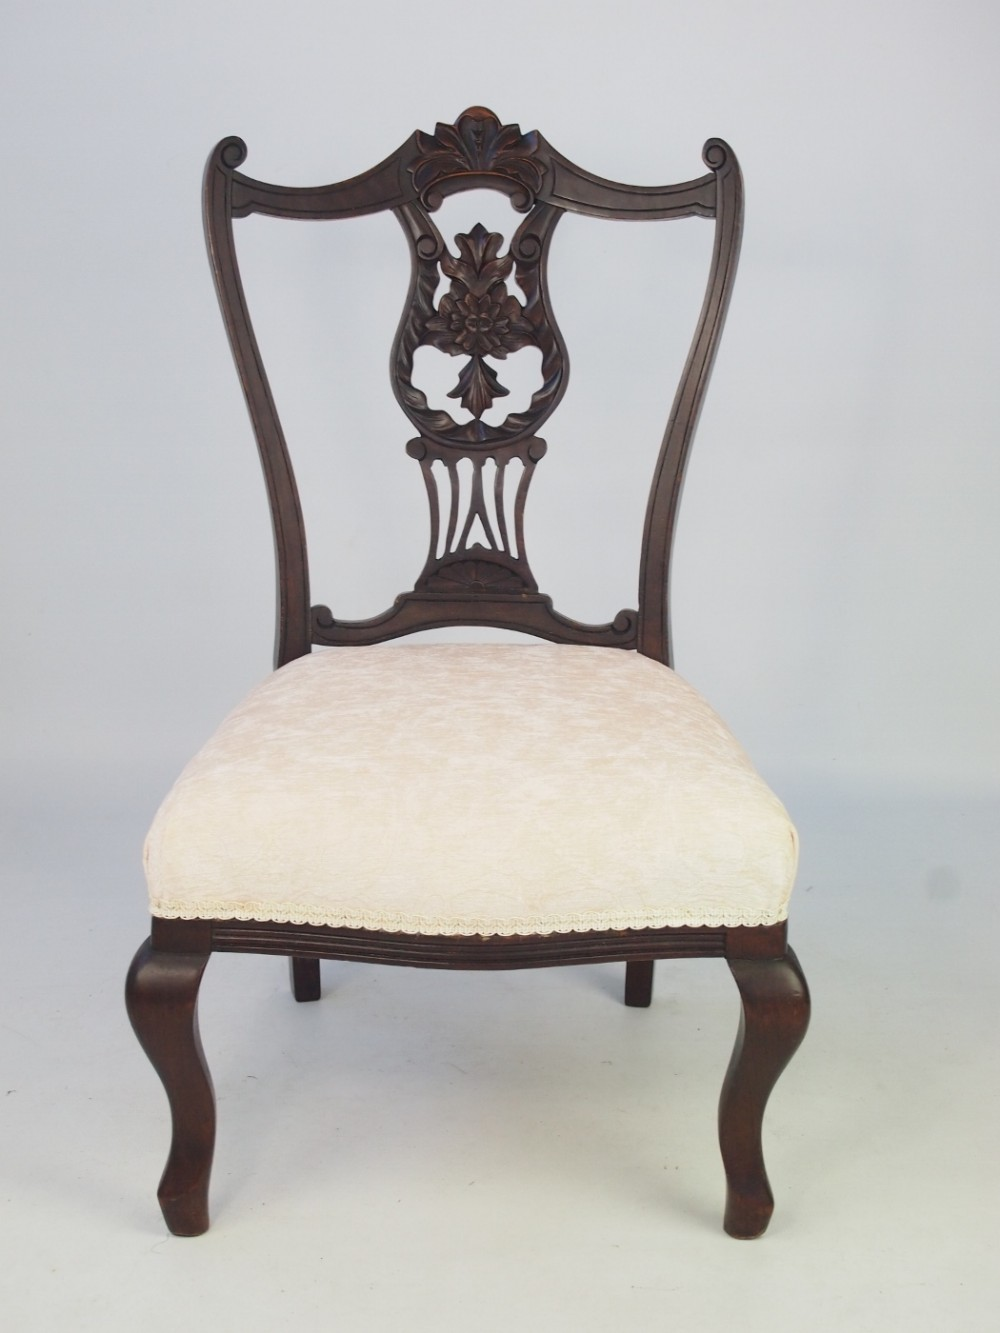 small antique edwardian dressing table chair - Small Antique Edwardian Dressing Table Chair 394748